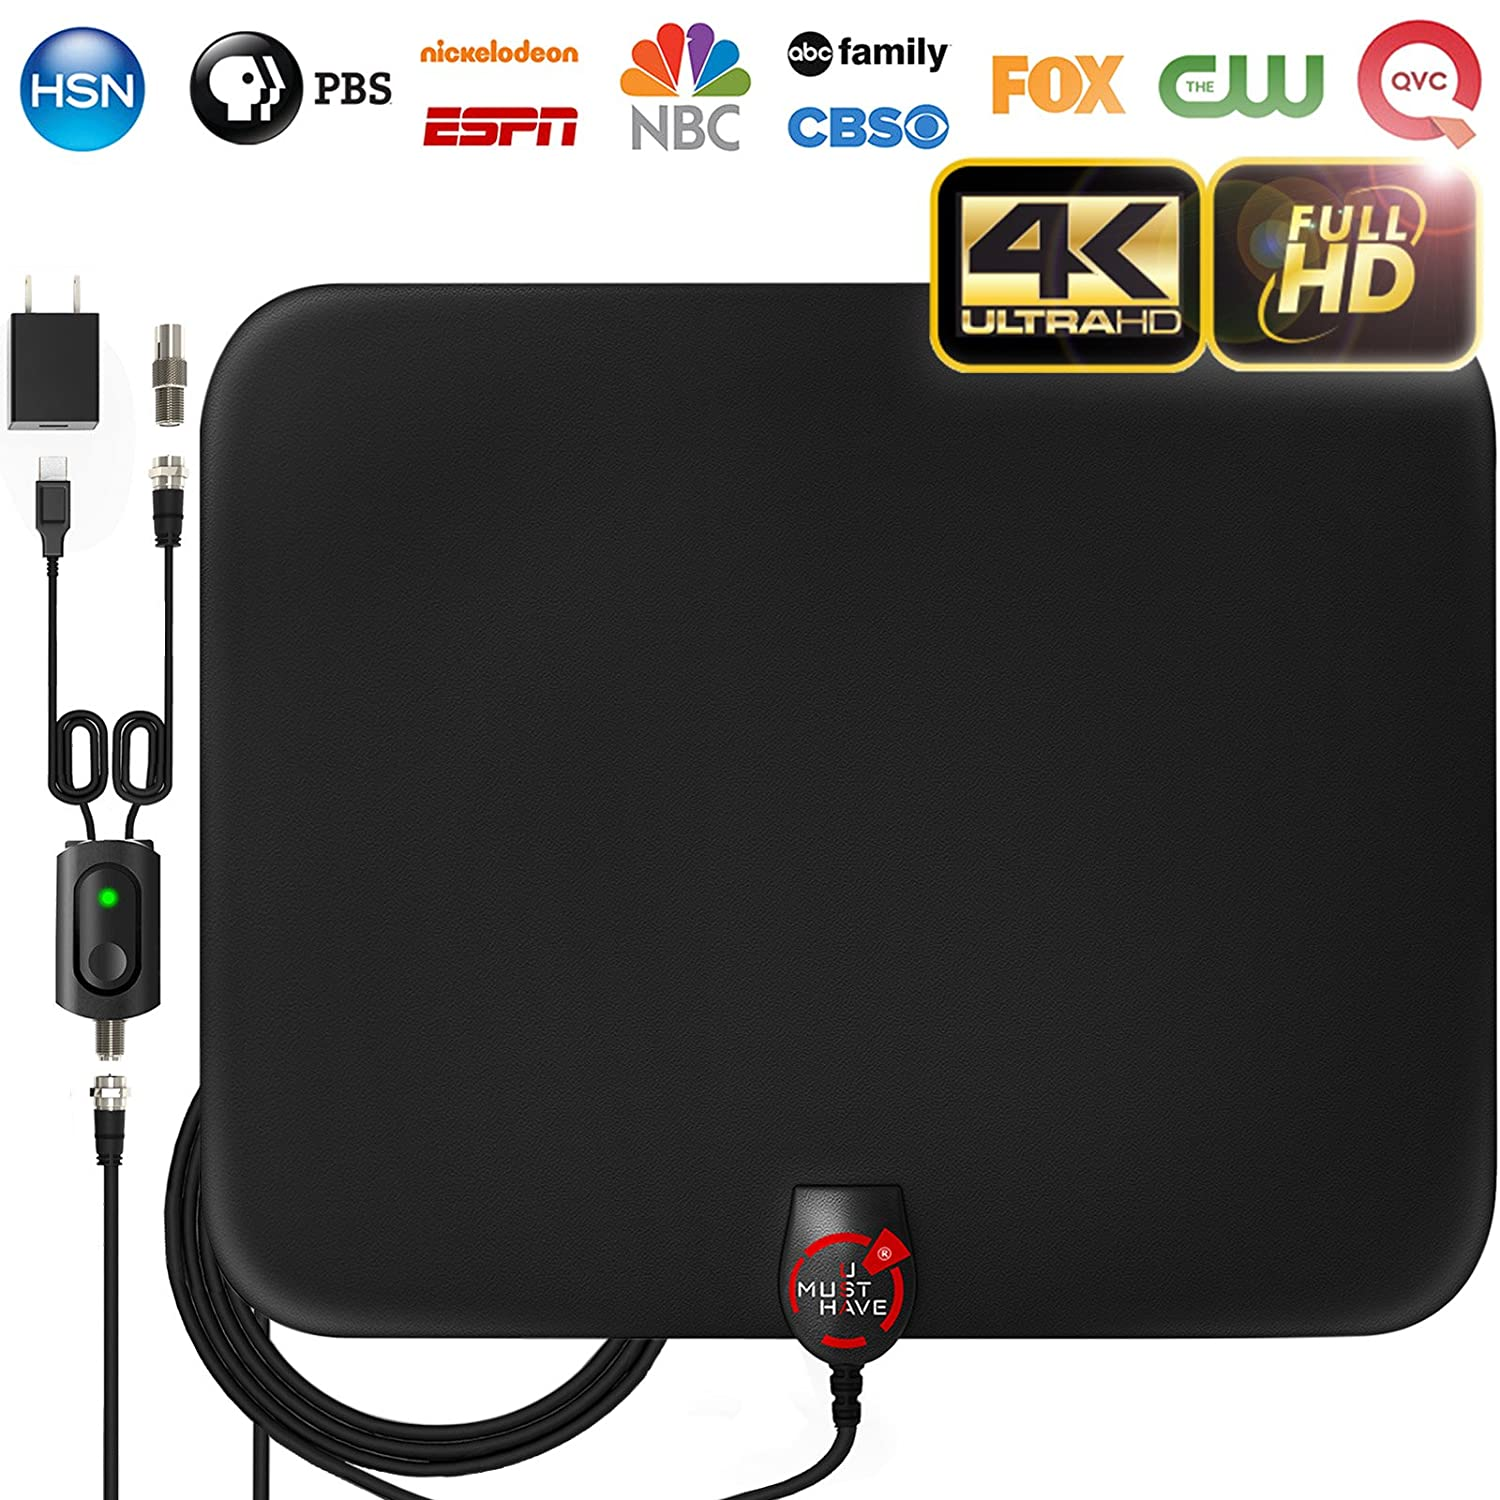 [2018 Latest] Amplified HD Digital TV Antenna Long 65-80 Miles Range � Support 4K 1080p & All Older TV's Indoor Powerful HDTV Amplifier Signal Booster - 18ft Coax Cable/USB Power Adapter